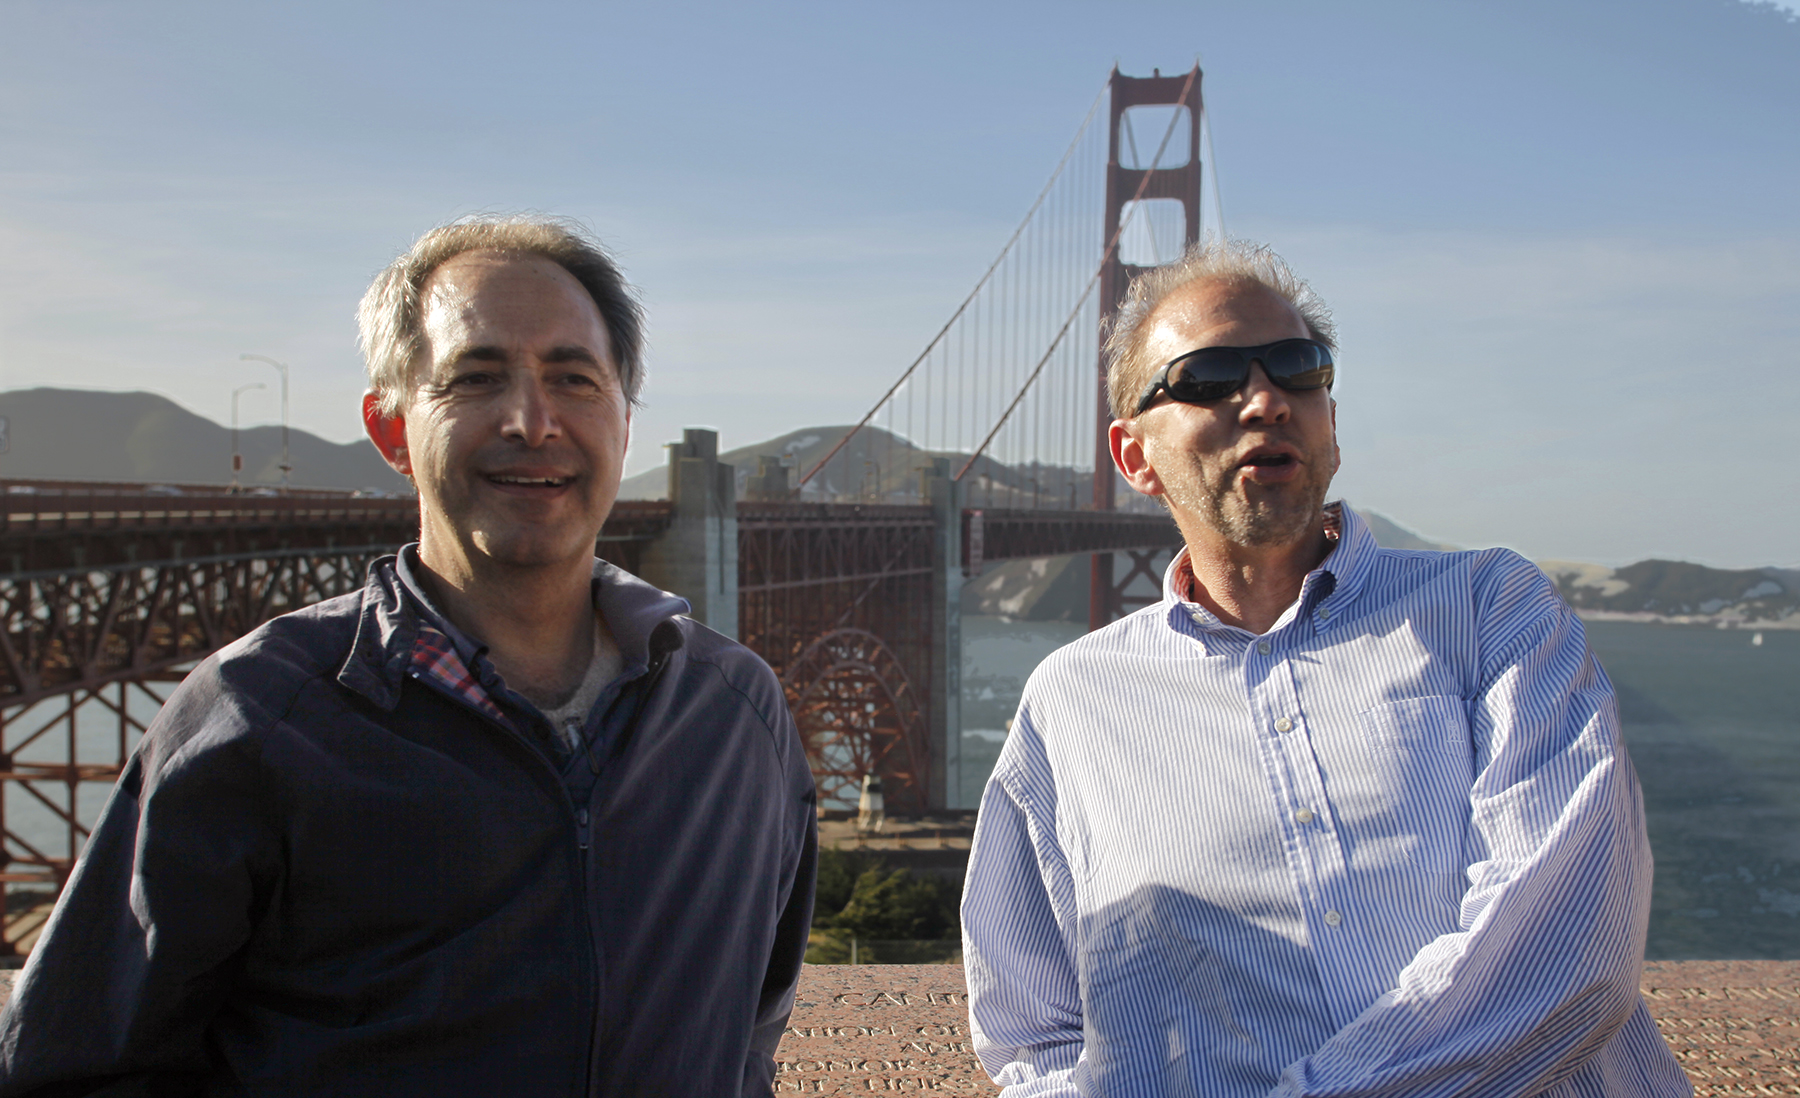 Co-Directors Rob Stegman and Todd Kwait at the Golden Gate